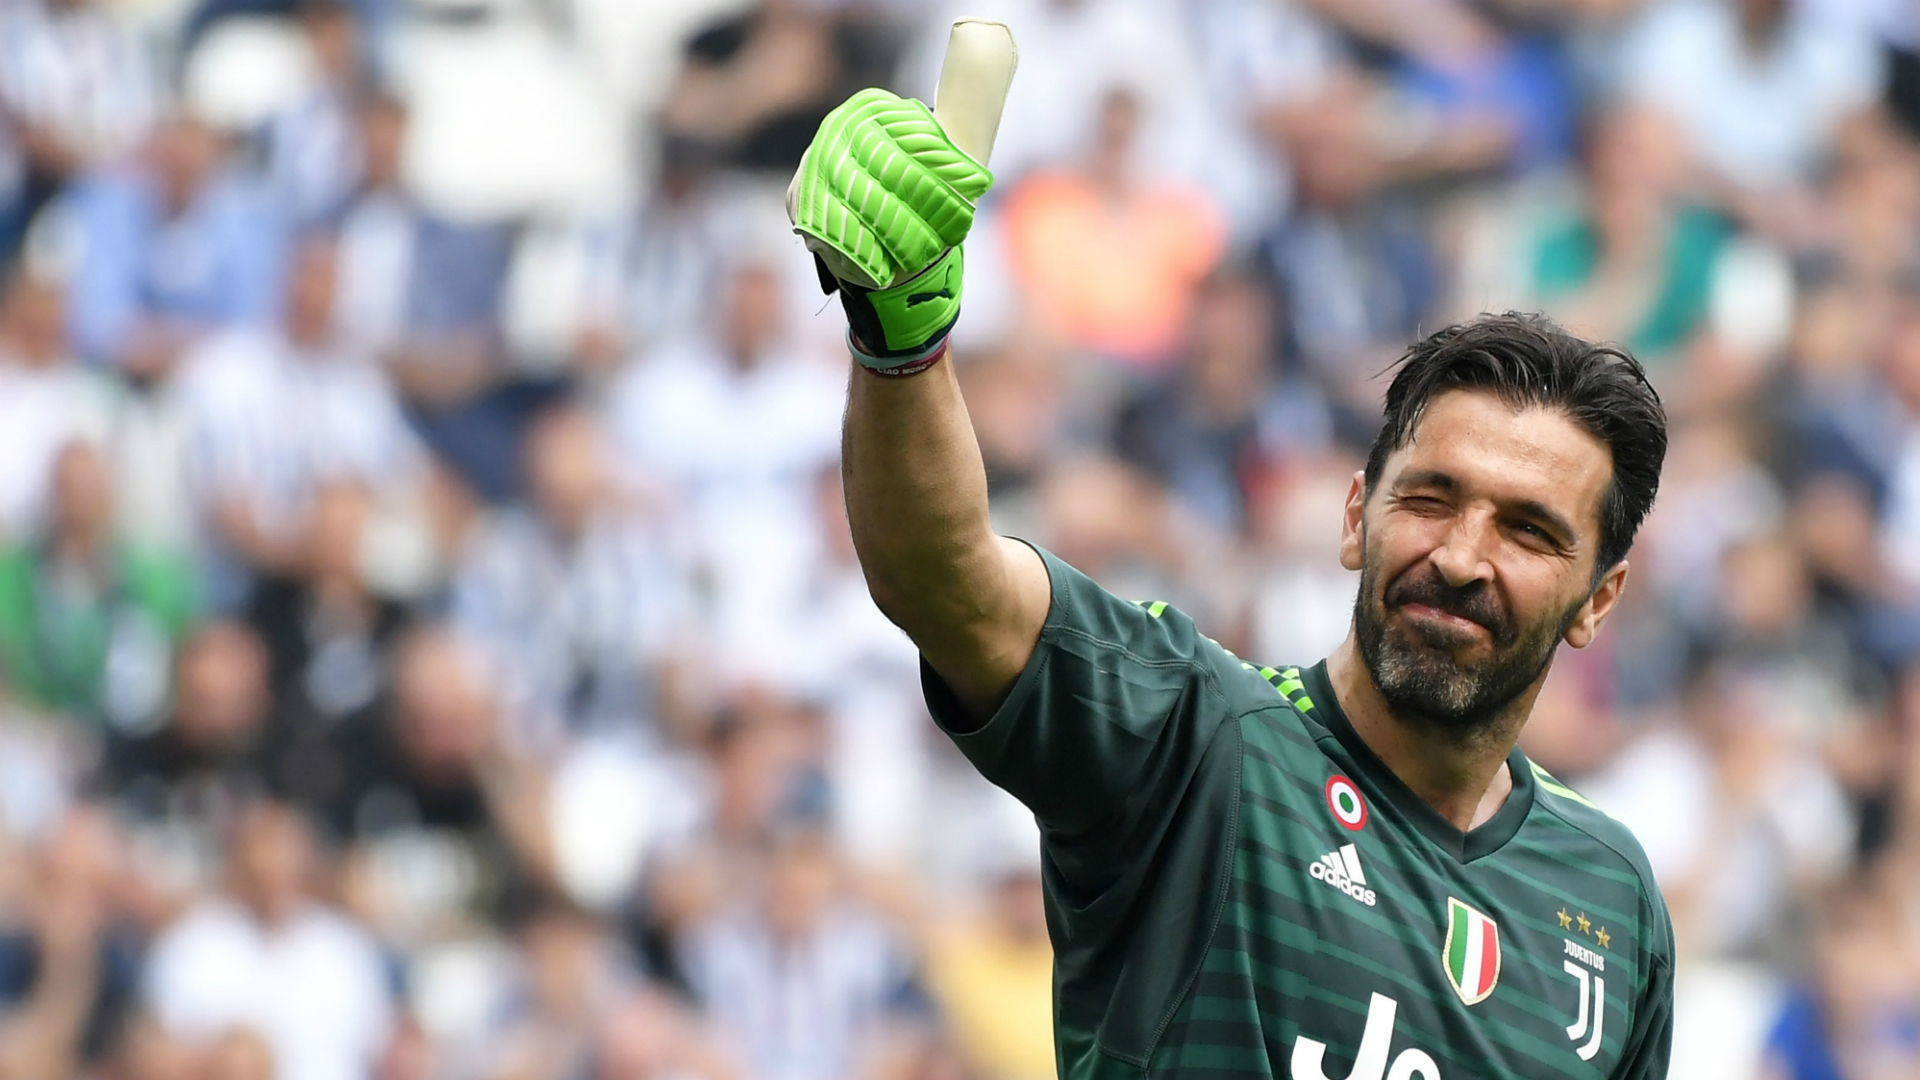 Video: Legends hail Buffon as 'best of all time' as keeper nears PSG move